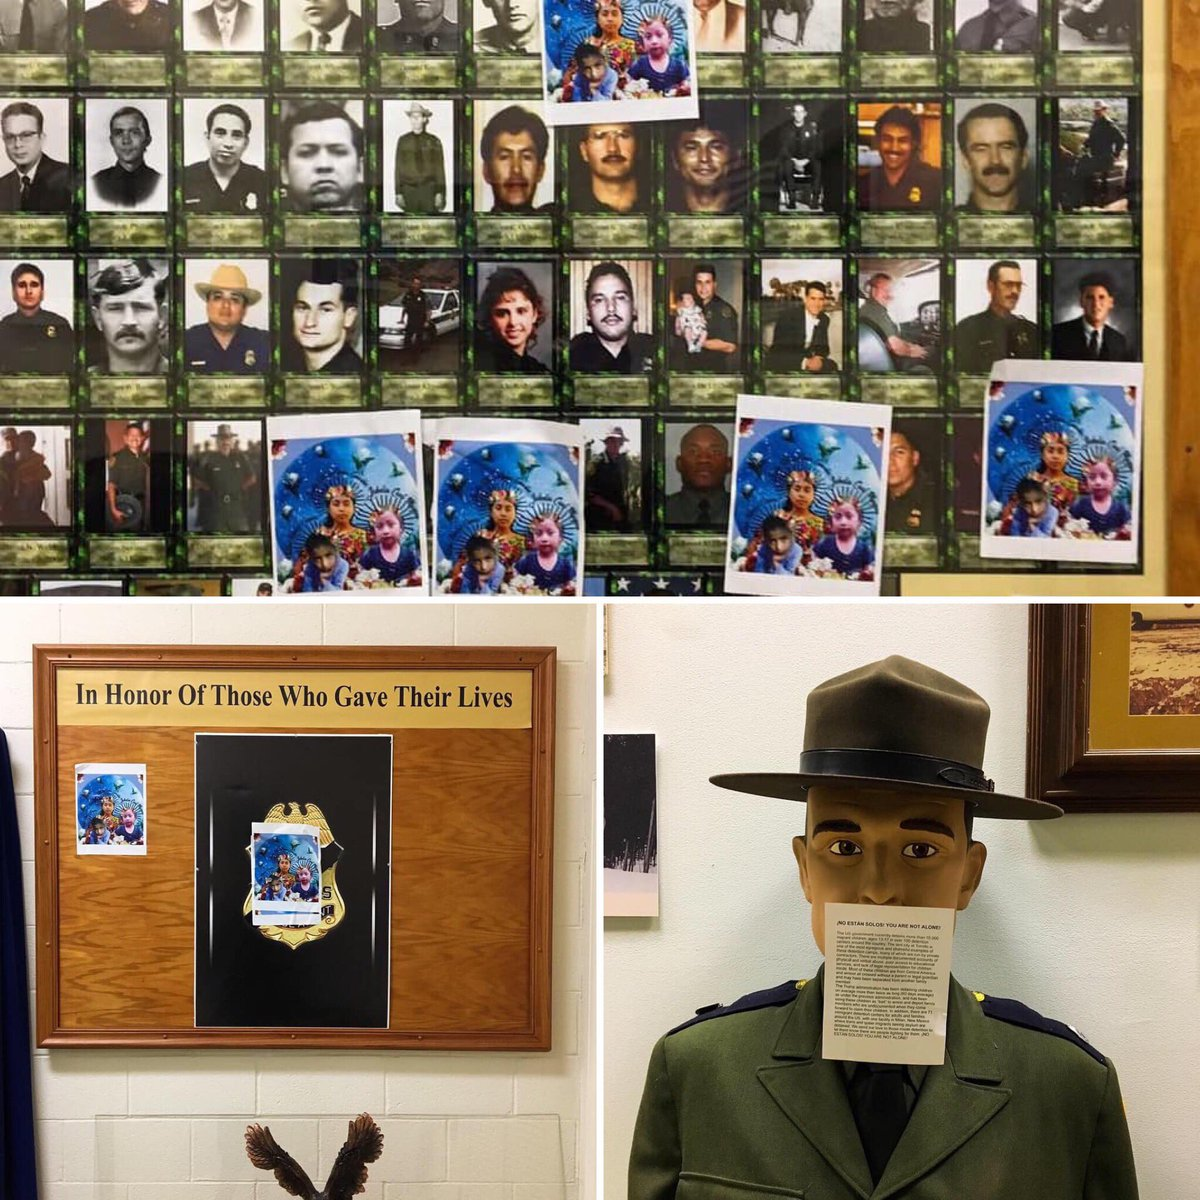 """Yesterday, masked protestors """"occupied & reclaimed"""" (whatever that means) the #BorderPatrol museum (non-profit entity run by volunteers) & defaced our fallen agent memorial (a very sacred monument).  I'll let you draw your own conclusions about the hypocrisy of their actions...🙄"""